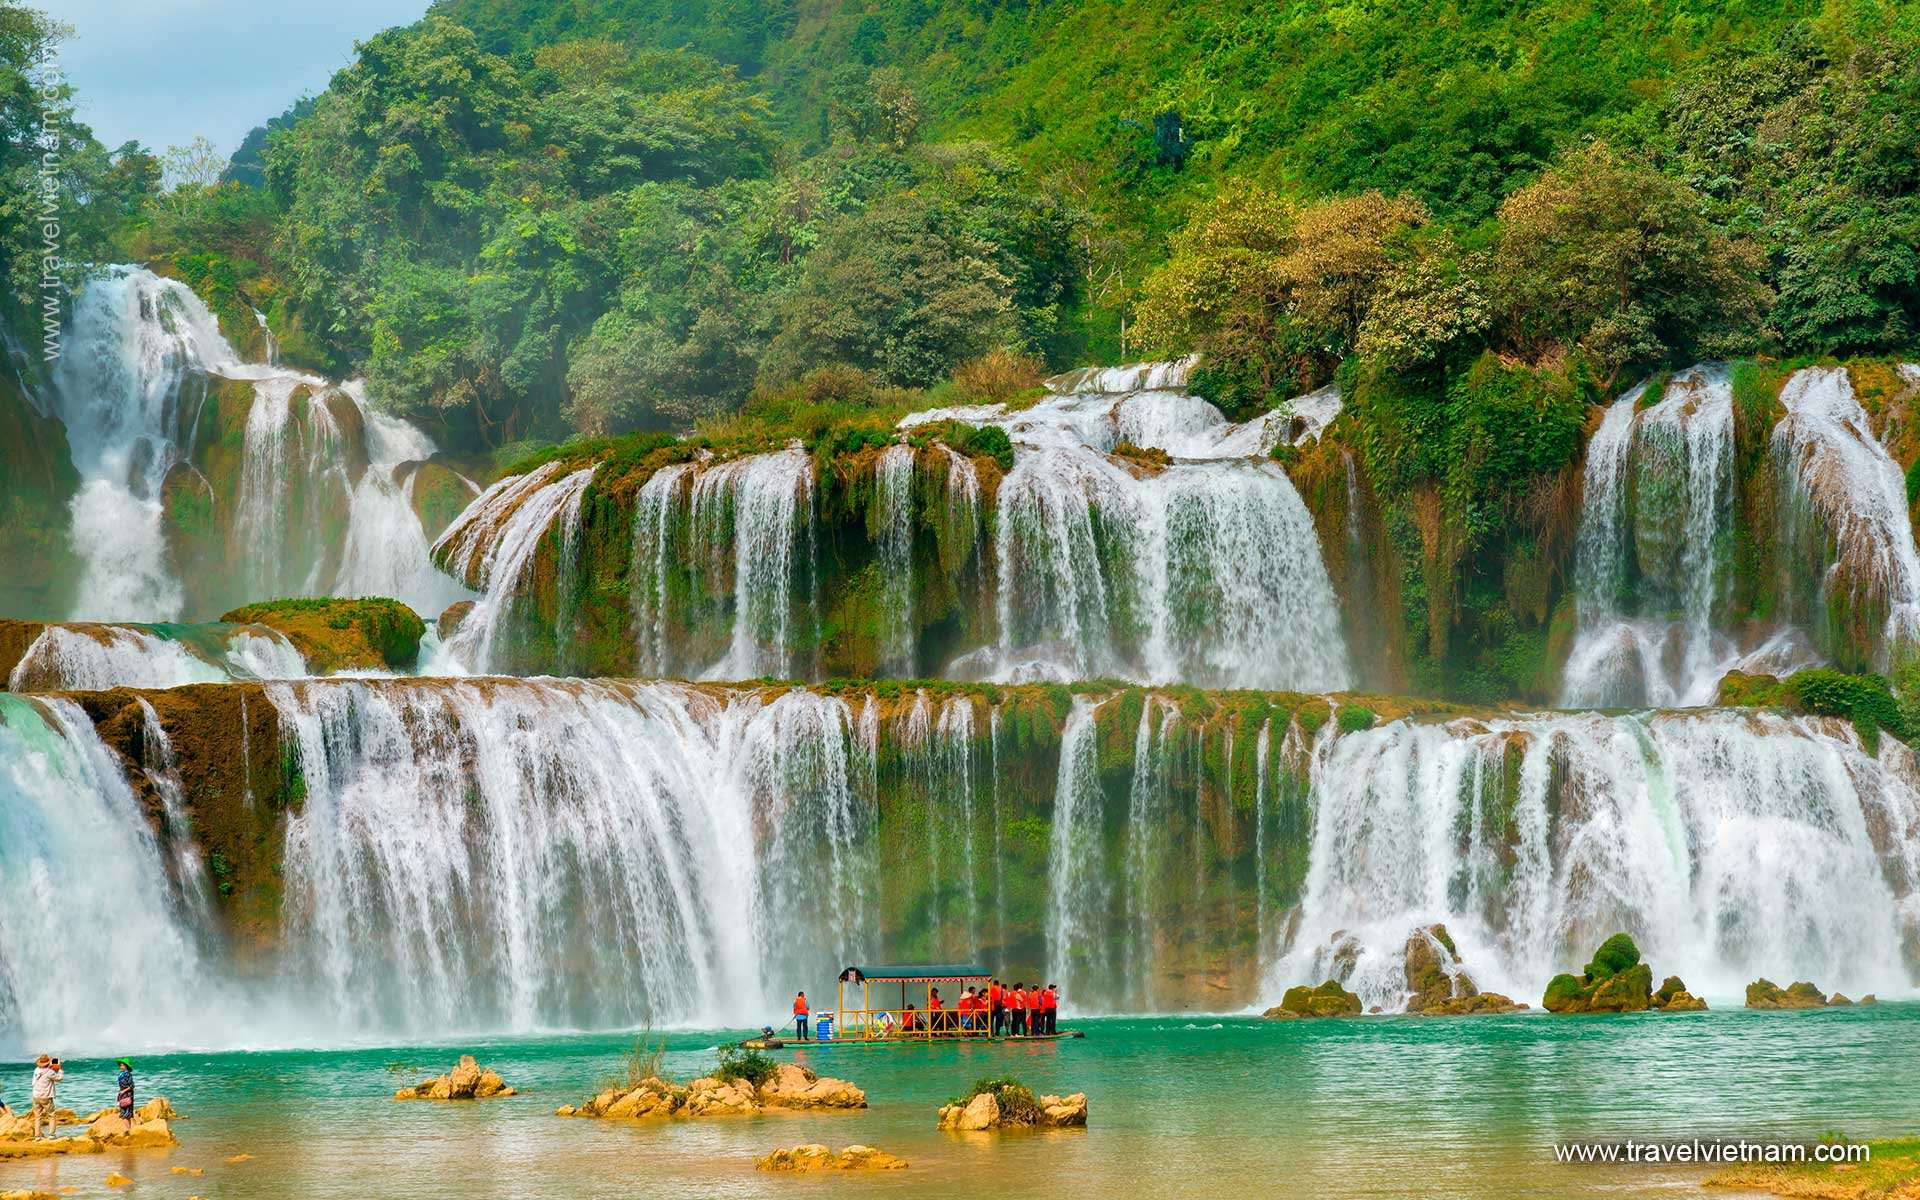 North-East Vietnam Adventure - 5 Days